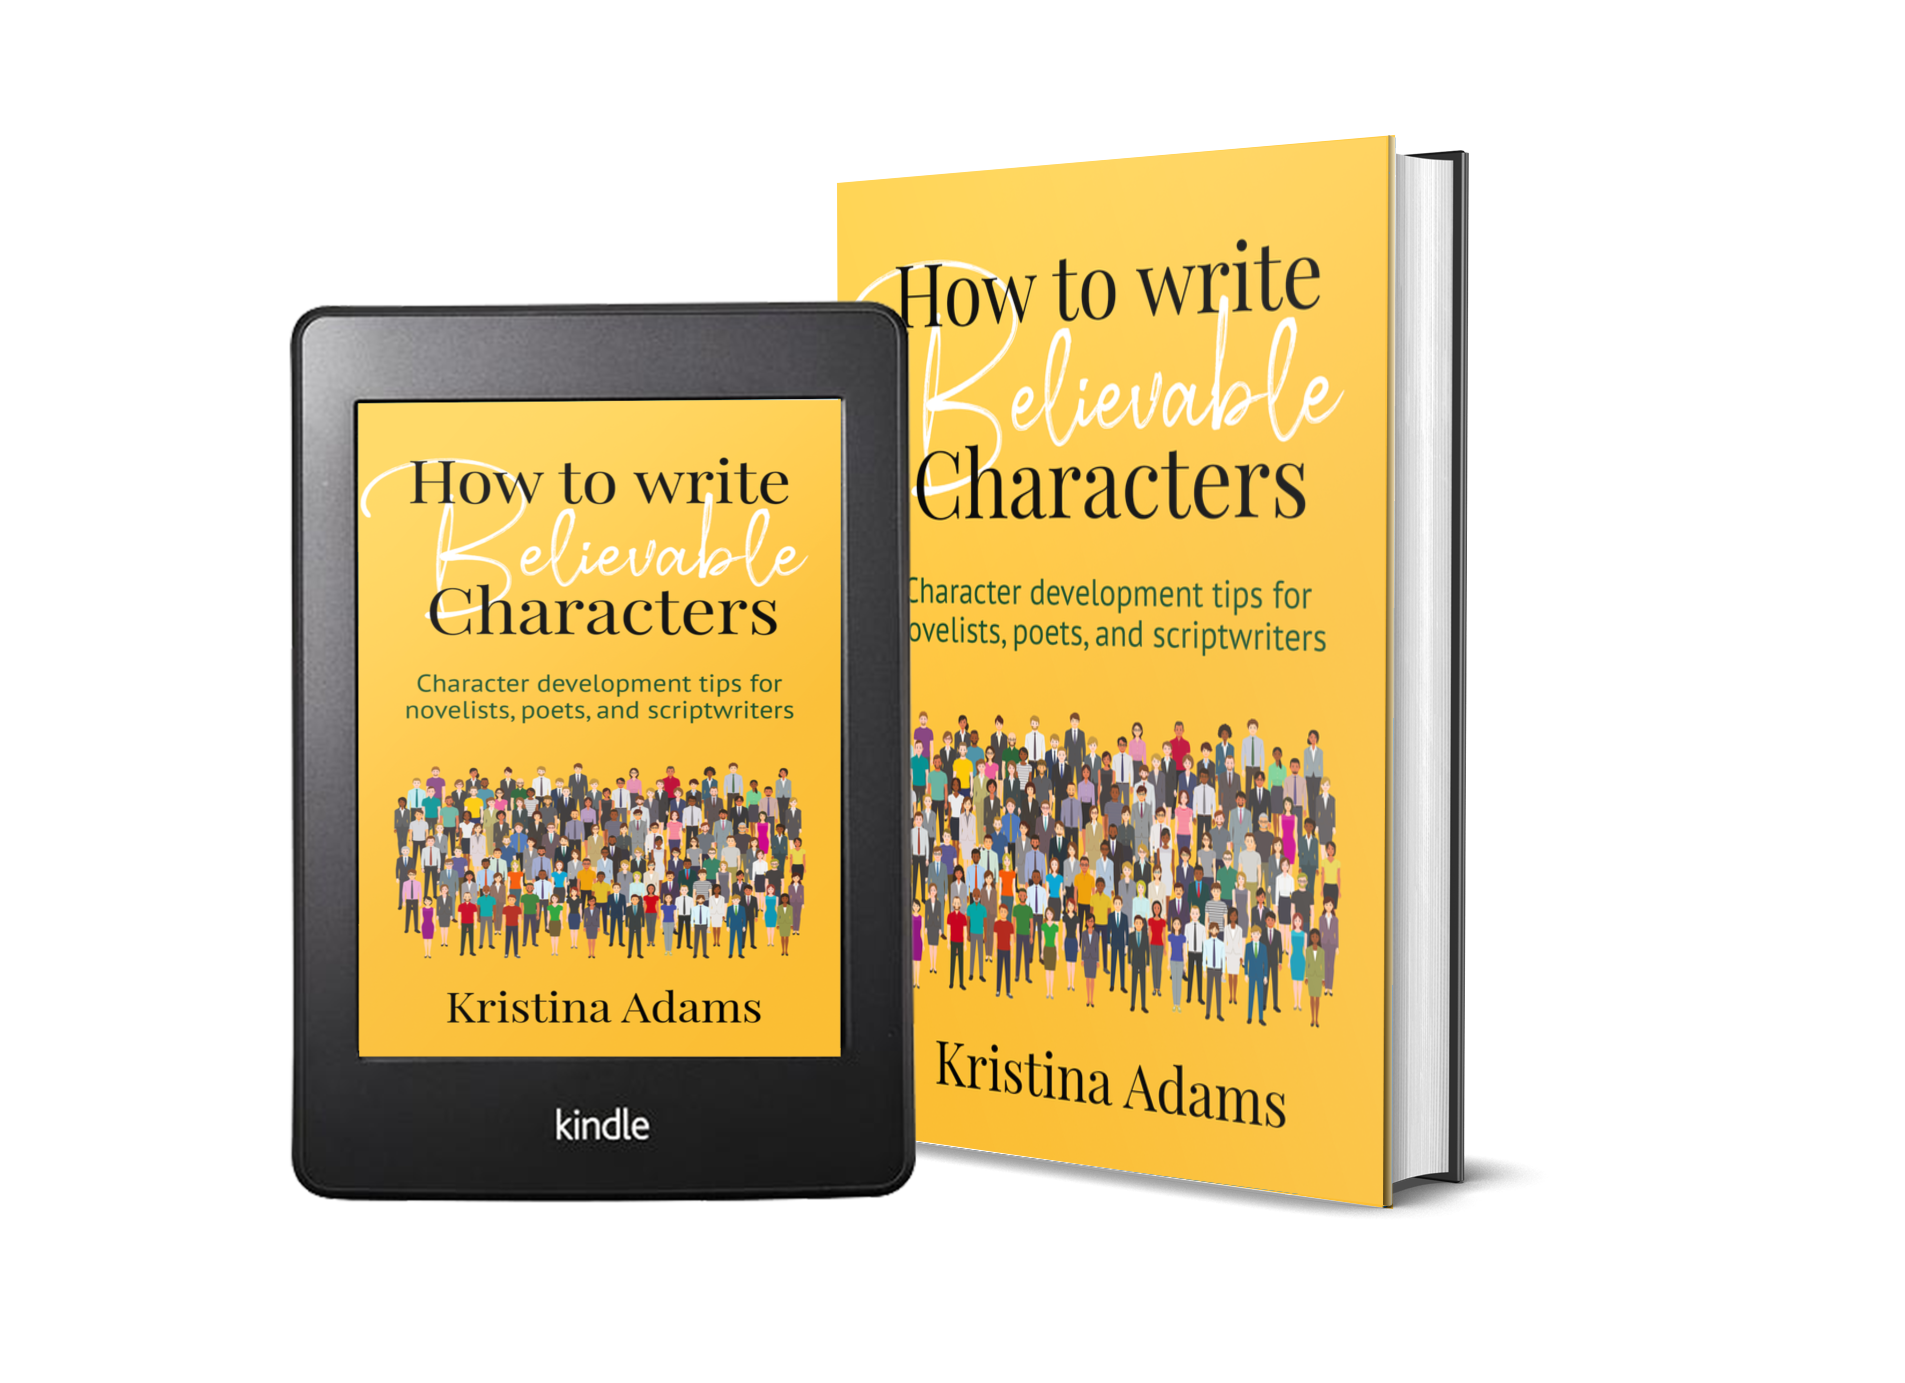 How to Write Believable Characters ebook and print cover mockup